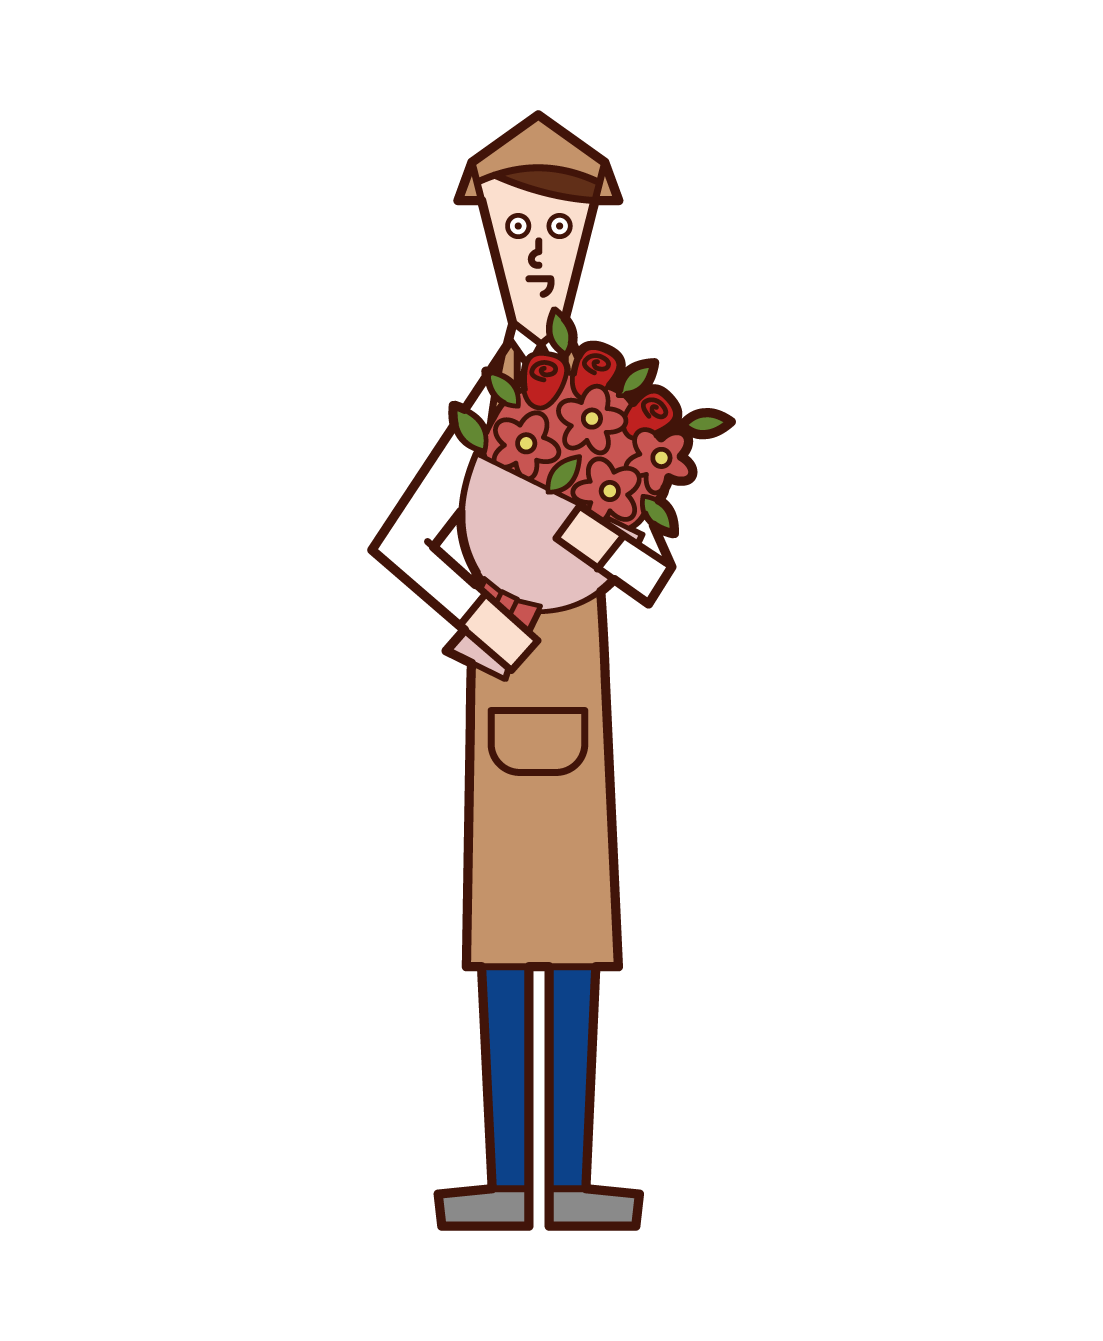 Flower Coordinator (man) Illustration